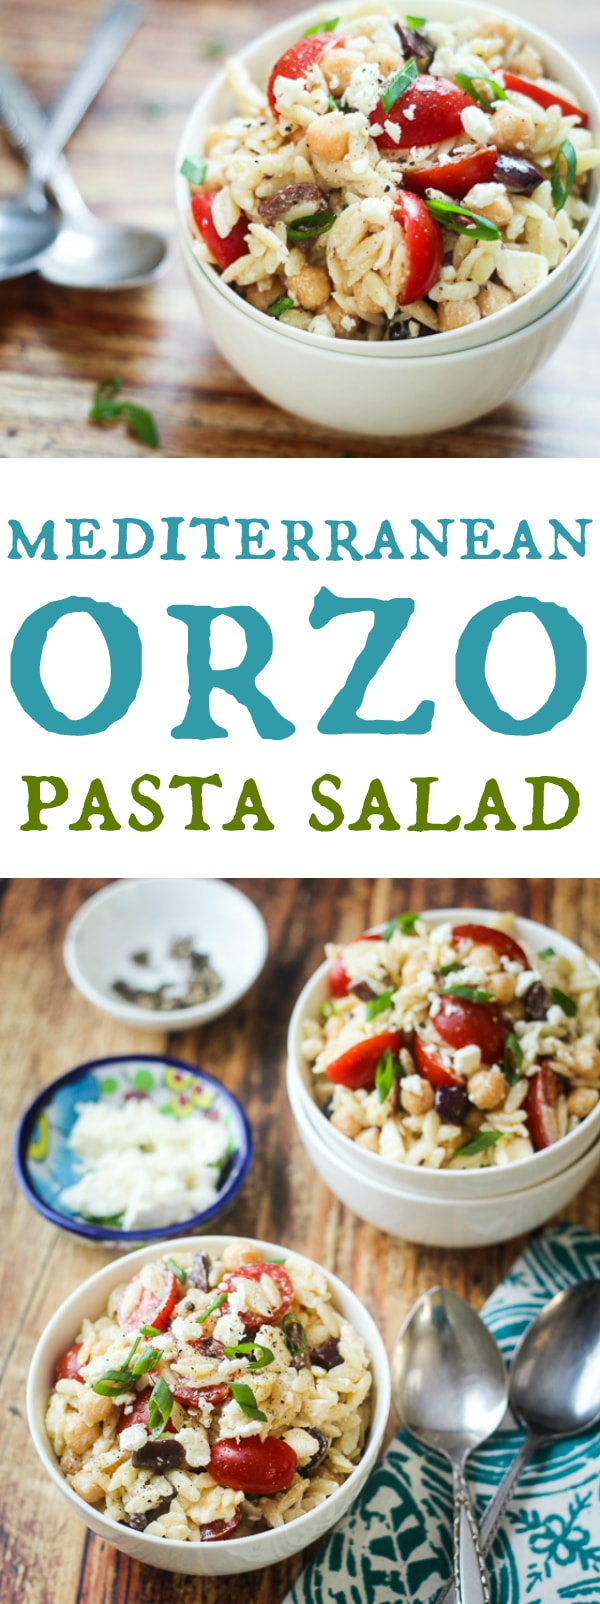 Orzo-lovers, unite! This easy Mediterranean orzo pasta salad is made with hearty chickpeas, sweet grape tomatoes, funky feta cheese, and a creamy dressing made with nonfat Greek yogurt. My go-to potluck dish!